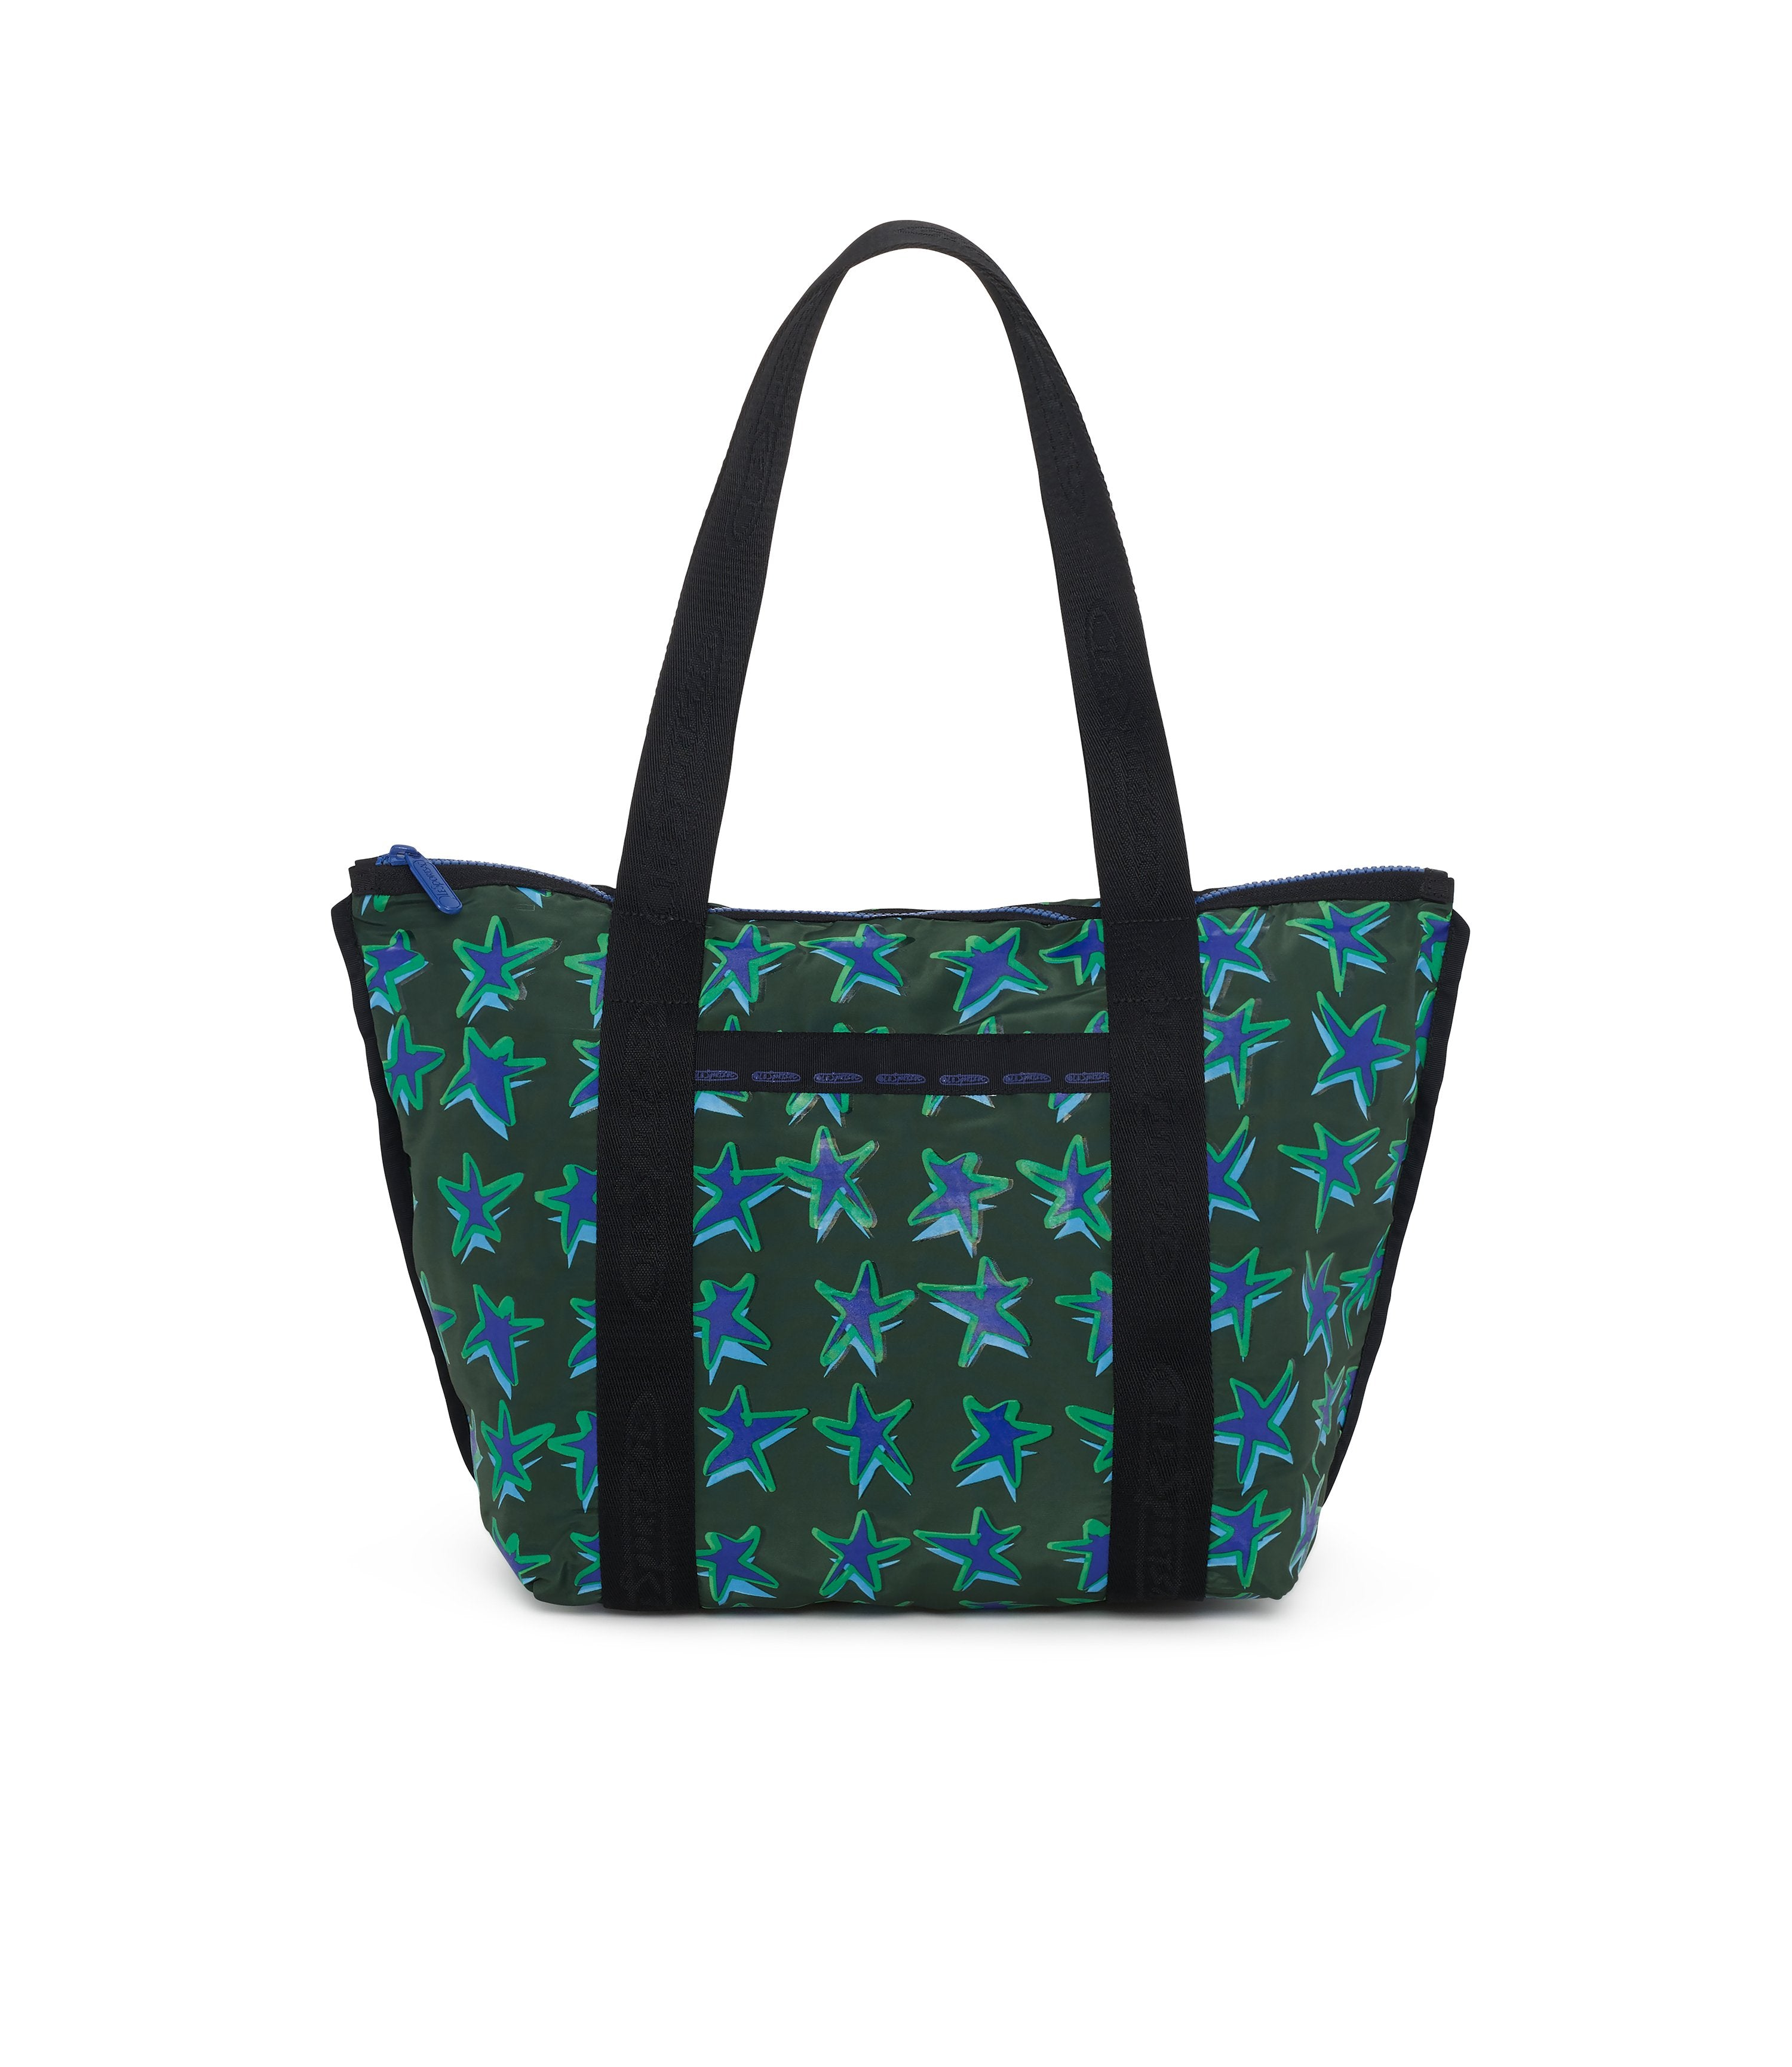 Medium Scarlette Tote 1